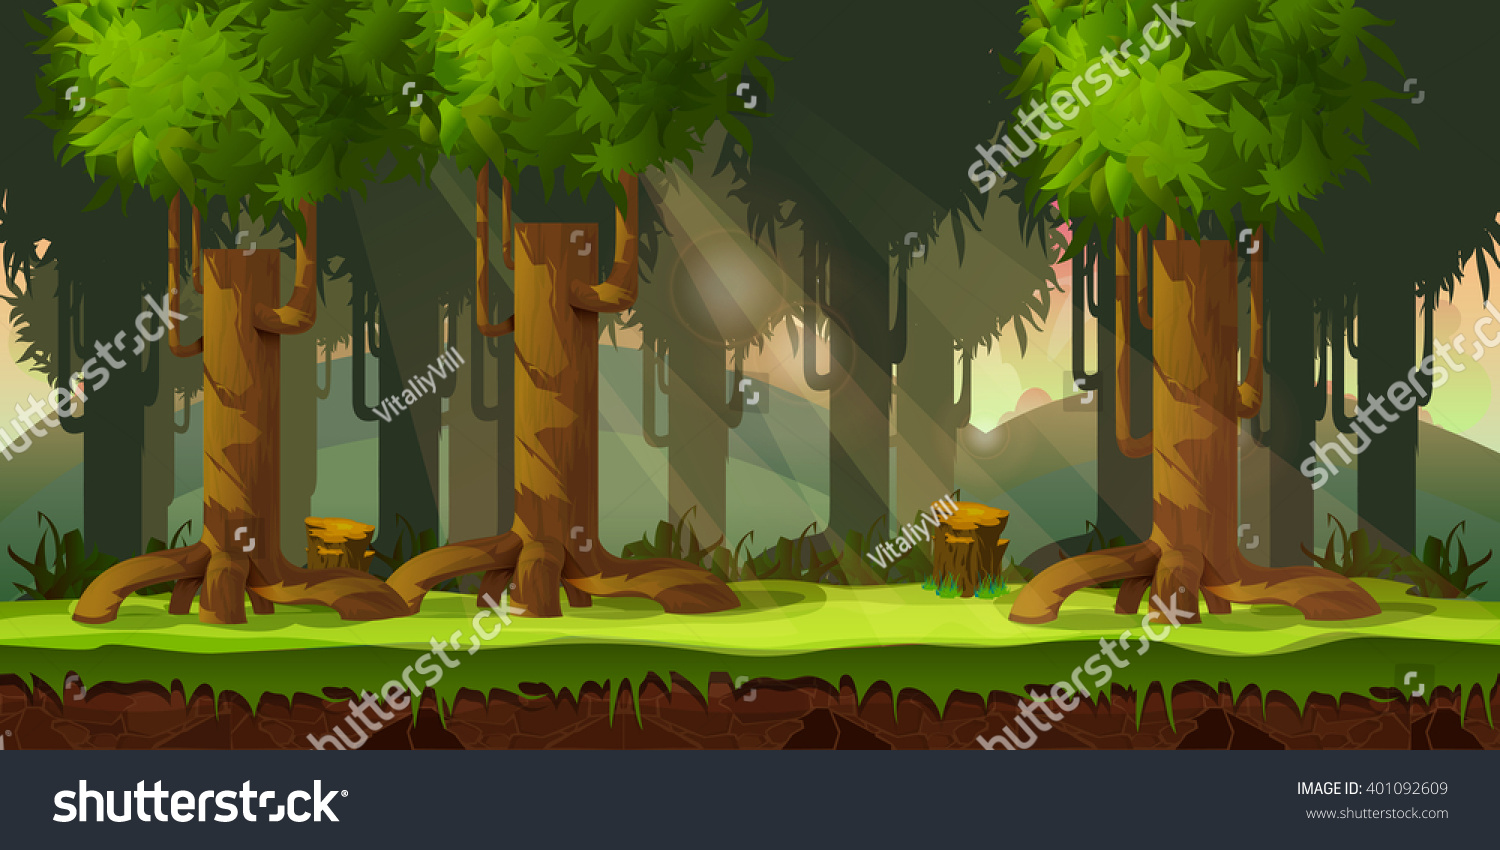 3d Parallax Background Wallpaper Free Download Forest Game Background 2d Game Application Stock Vector